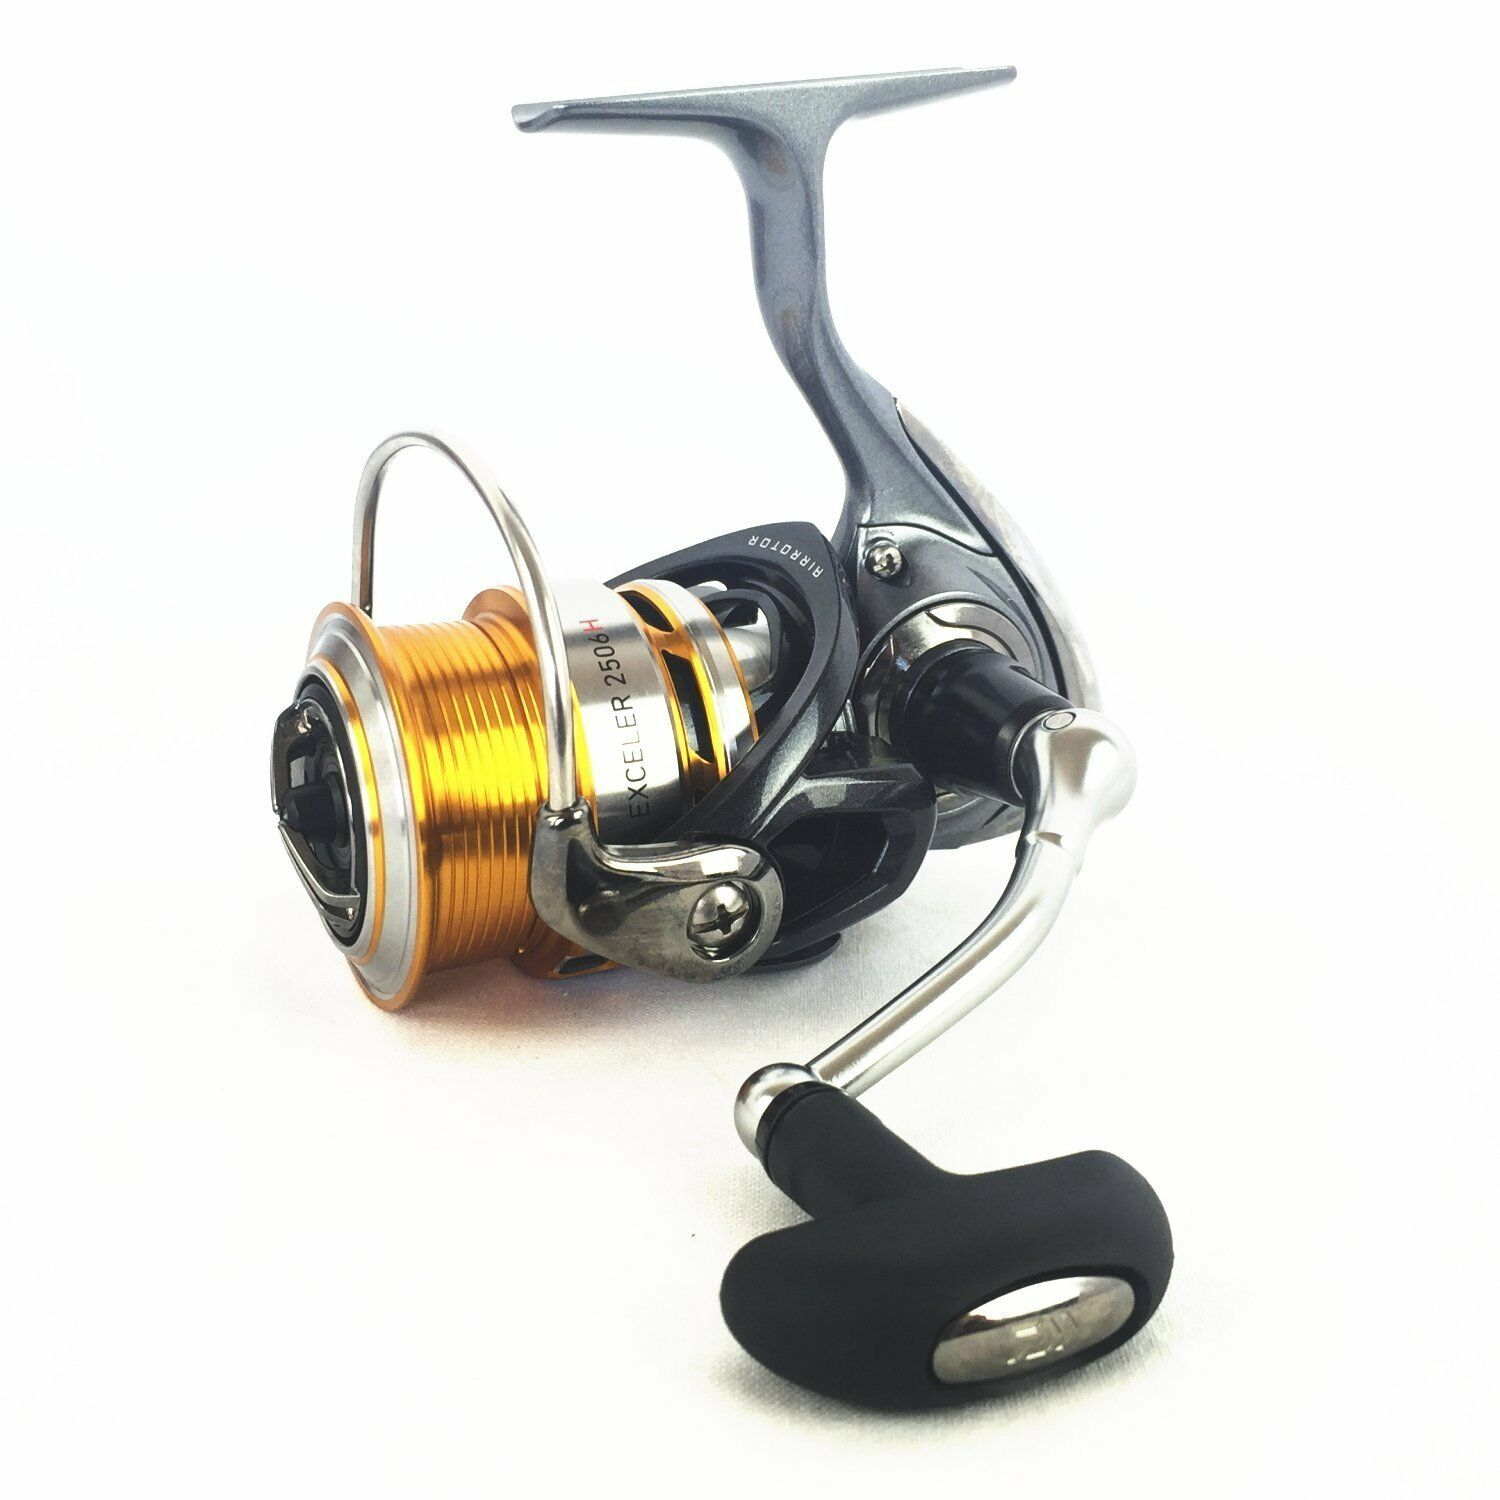 Daiwa 17 Spininng EXCELER 2506H Spininng 17 Reel MAGSEALD Nuovo ebbf5d